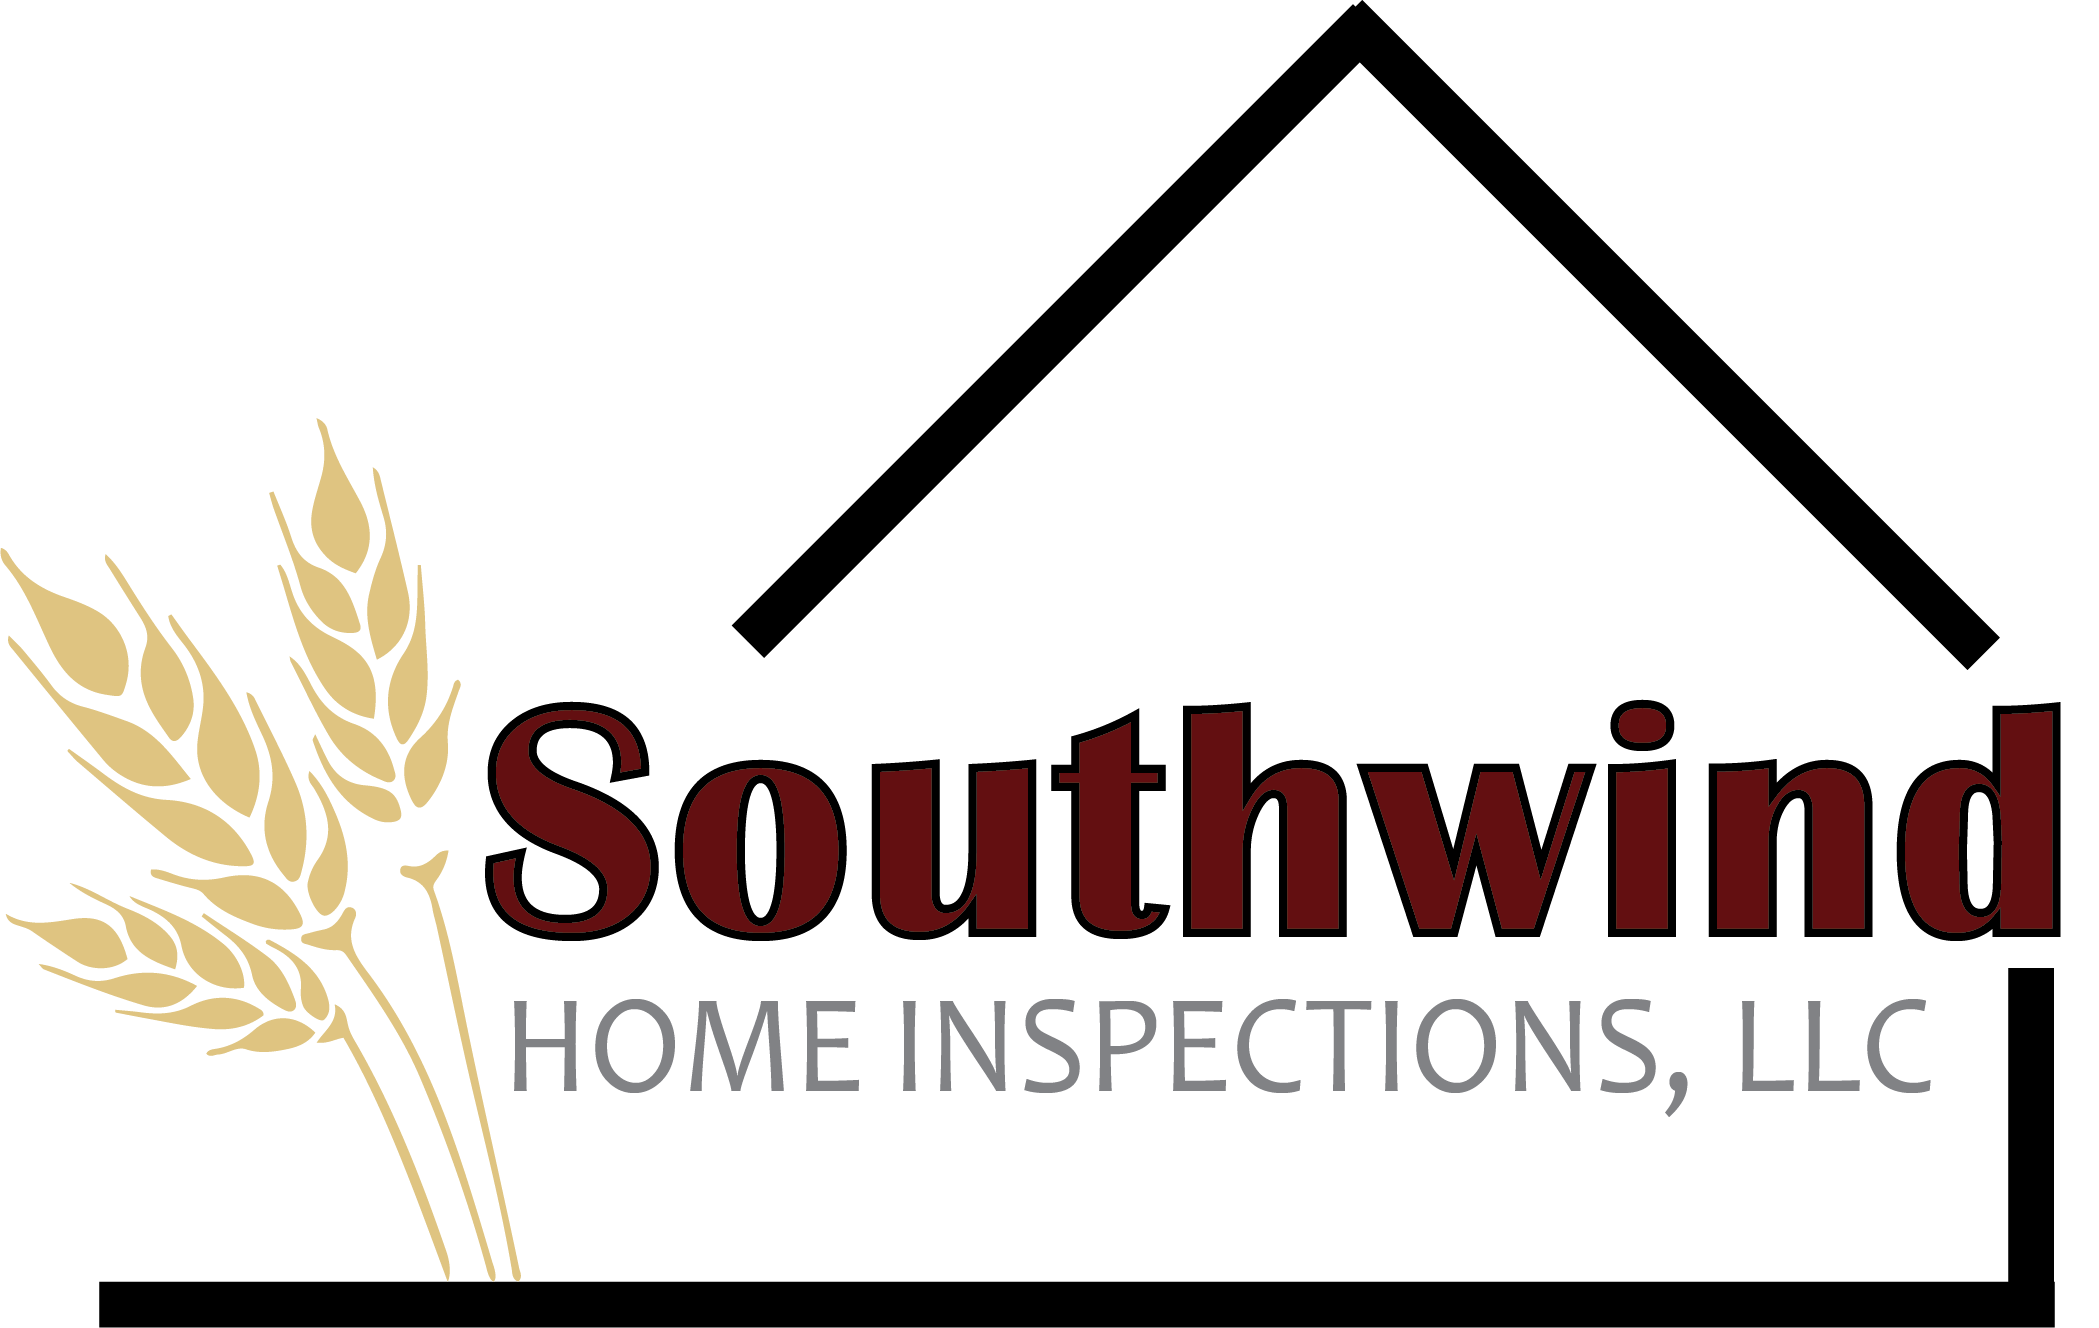 Southwind Home Inspections LLC